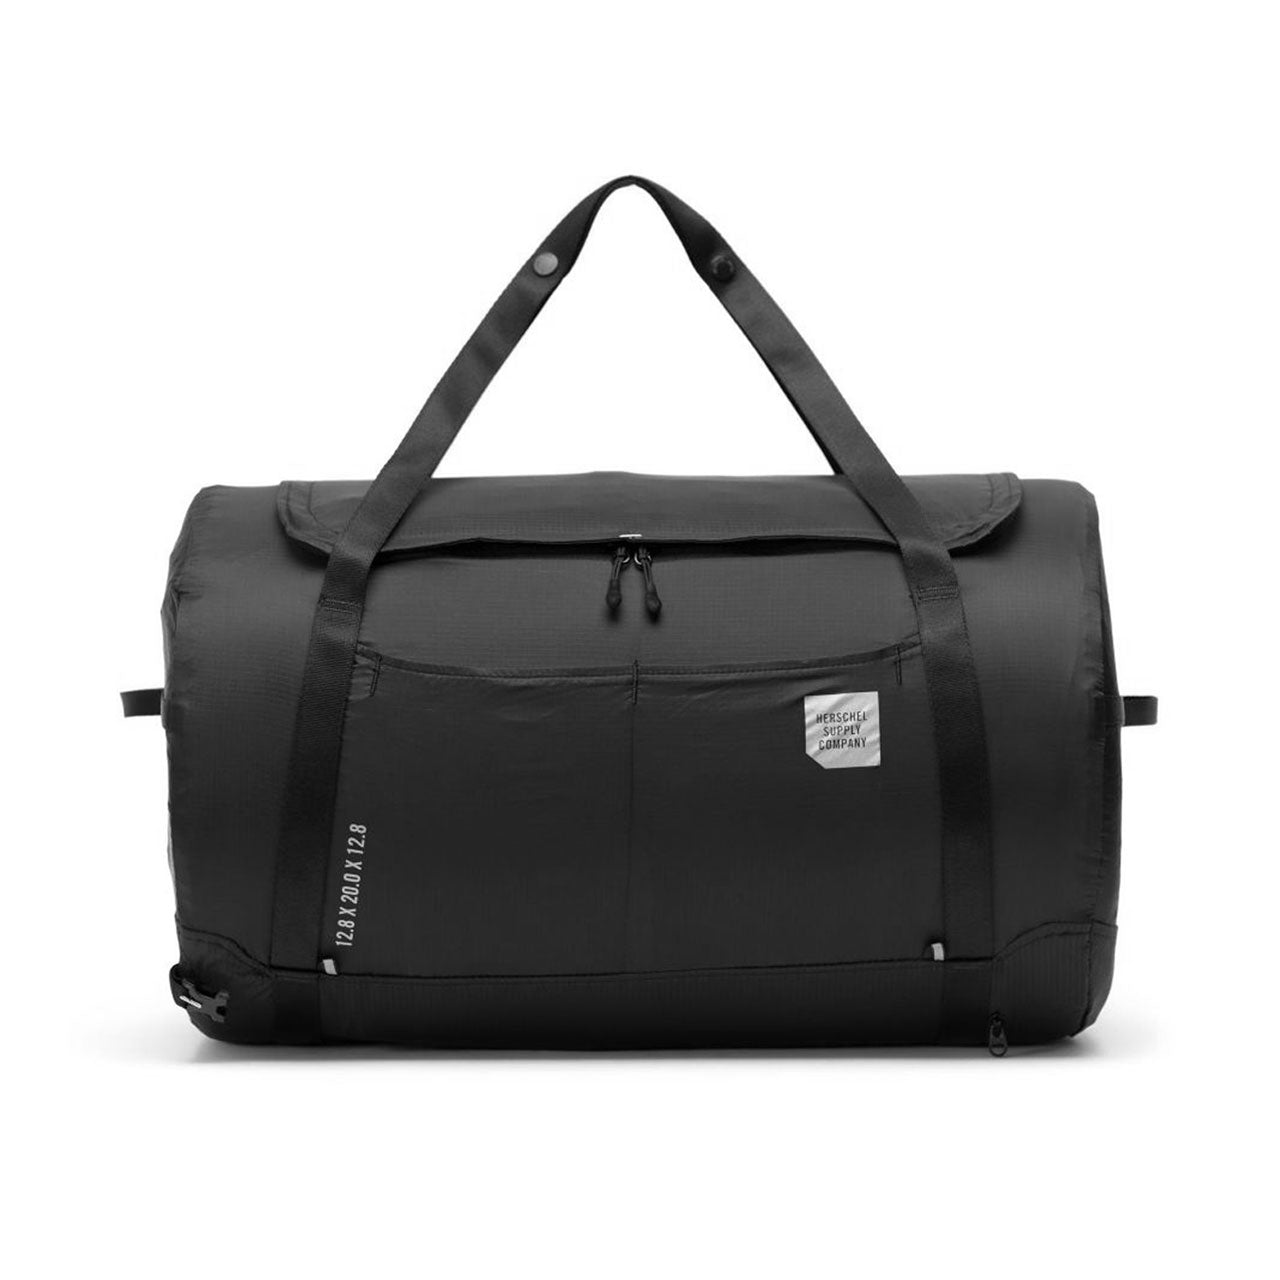 Herschel UltraLight Duffel Bag